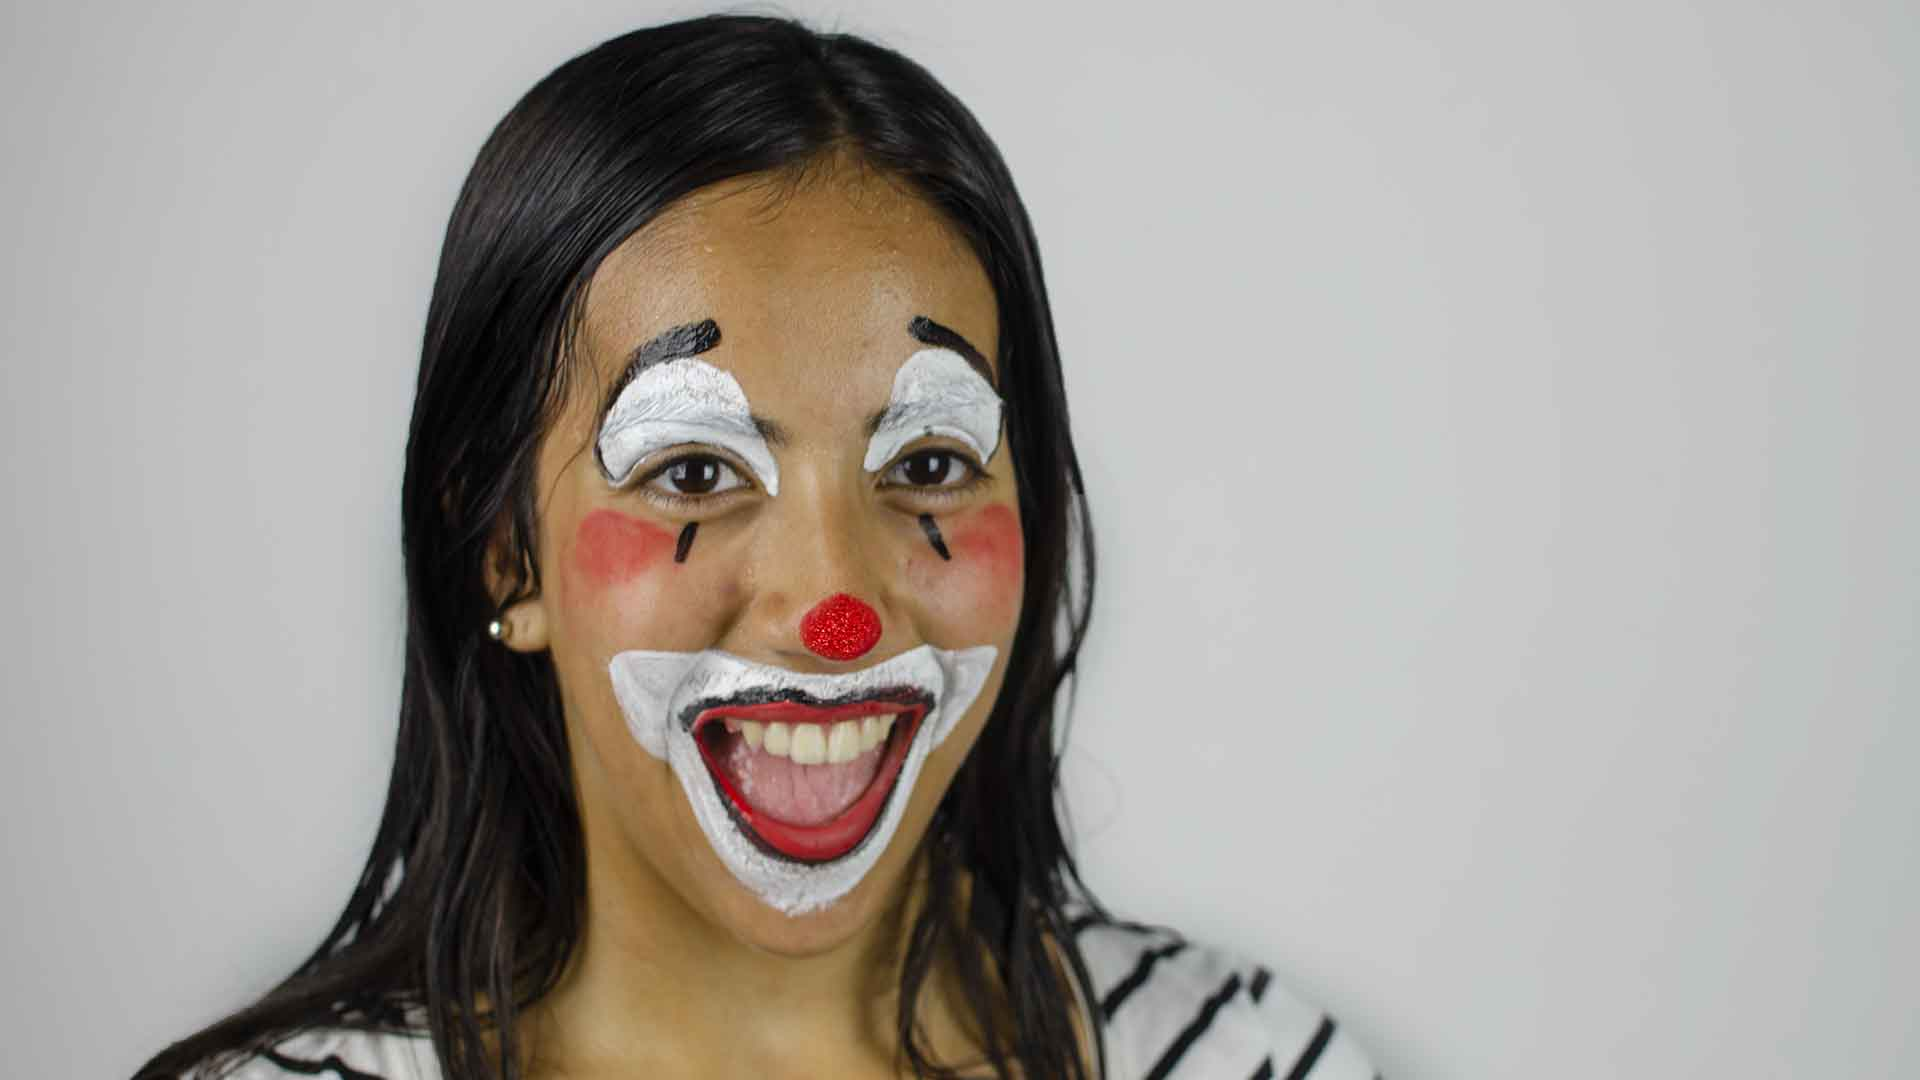 Creepy Clown Schminken How To Face Paint A Clown With Pictures Wikihow